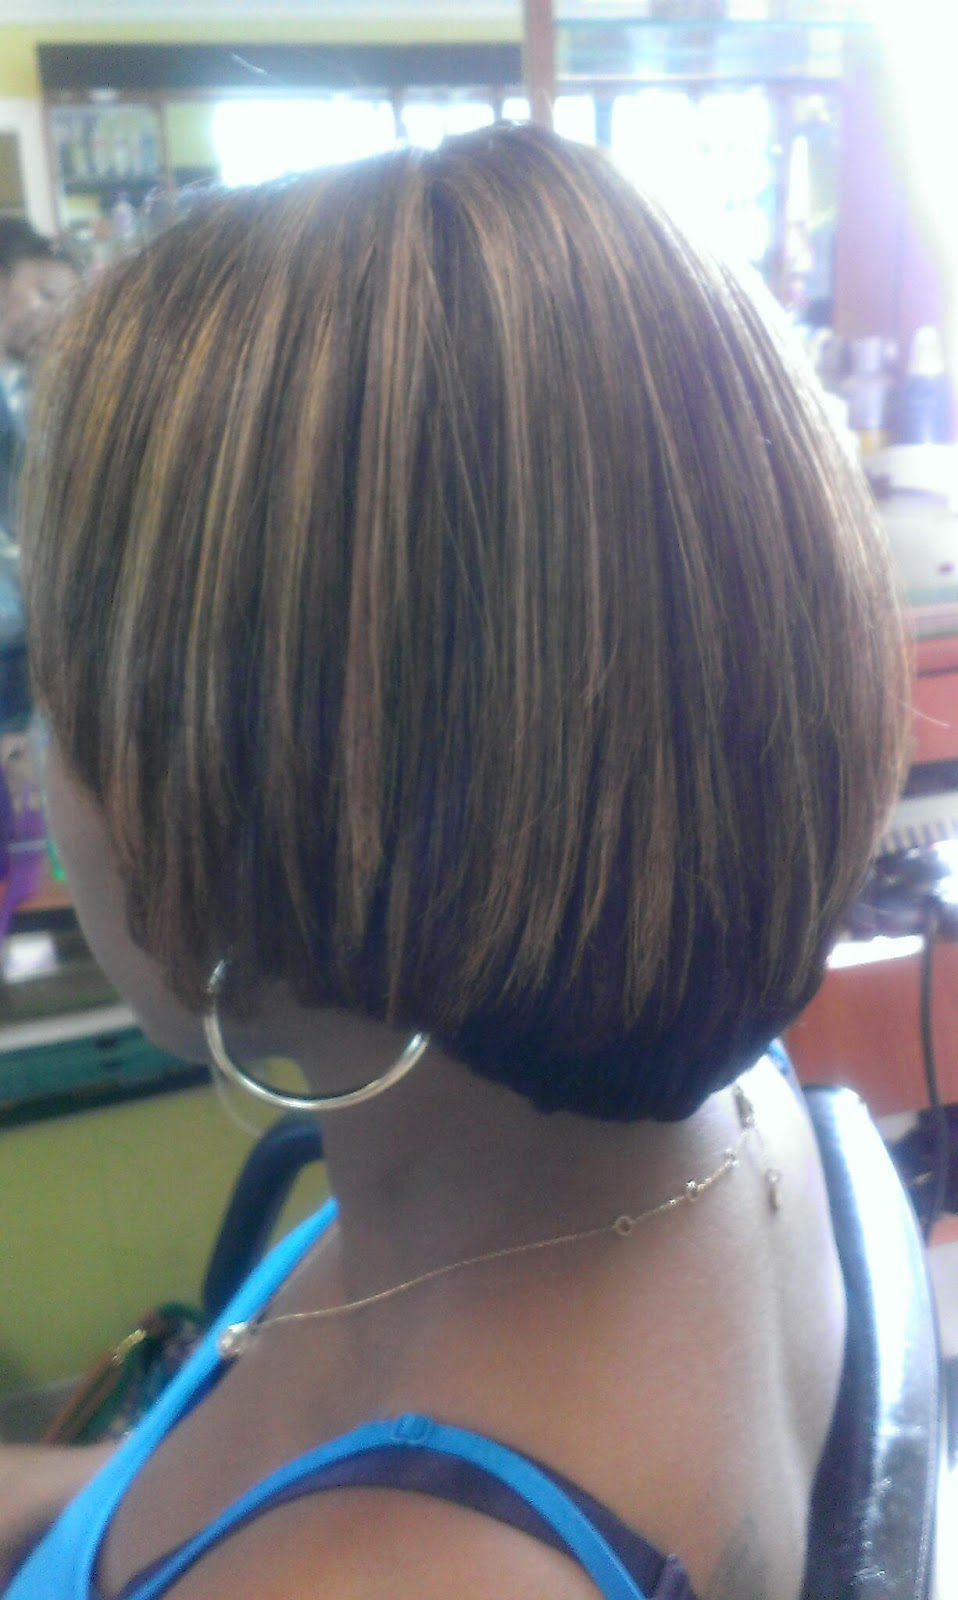 Hair Artistry By Chyna Natural Hair No Relaxer Blow Out And Color